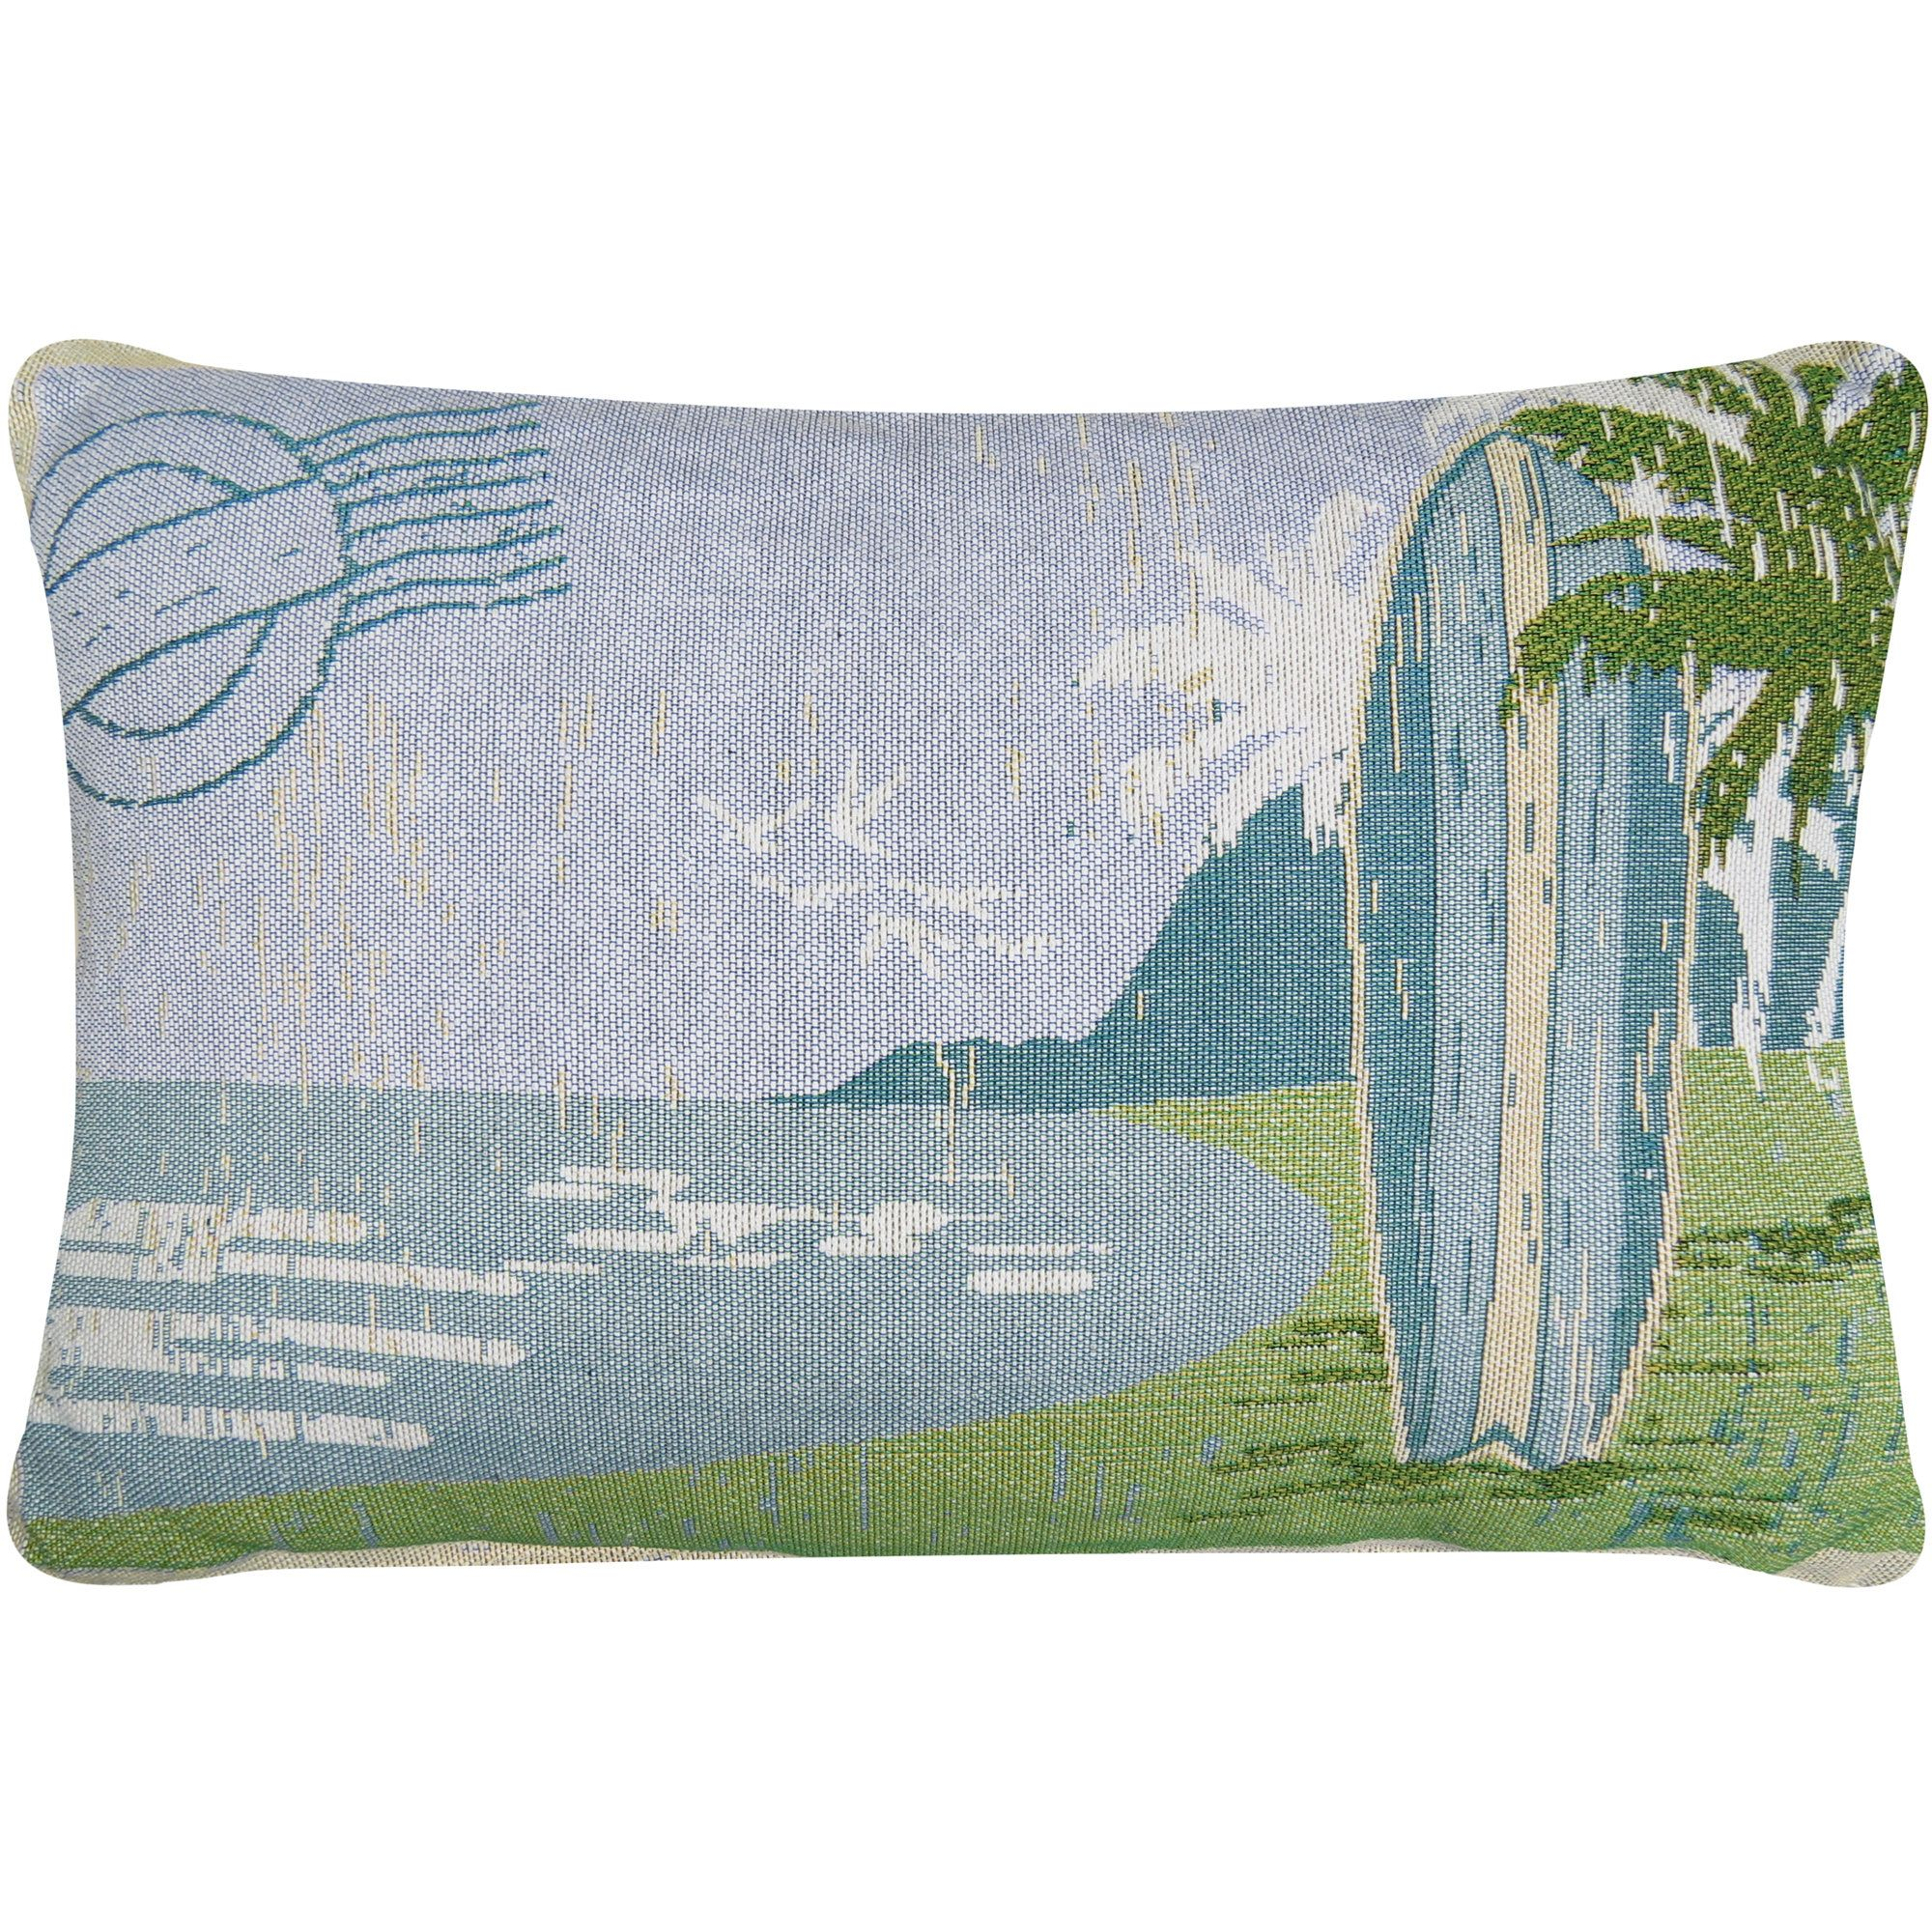 Surf board tapestry decorative lumbar pillow products pinterest